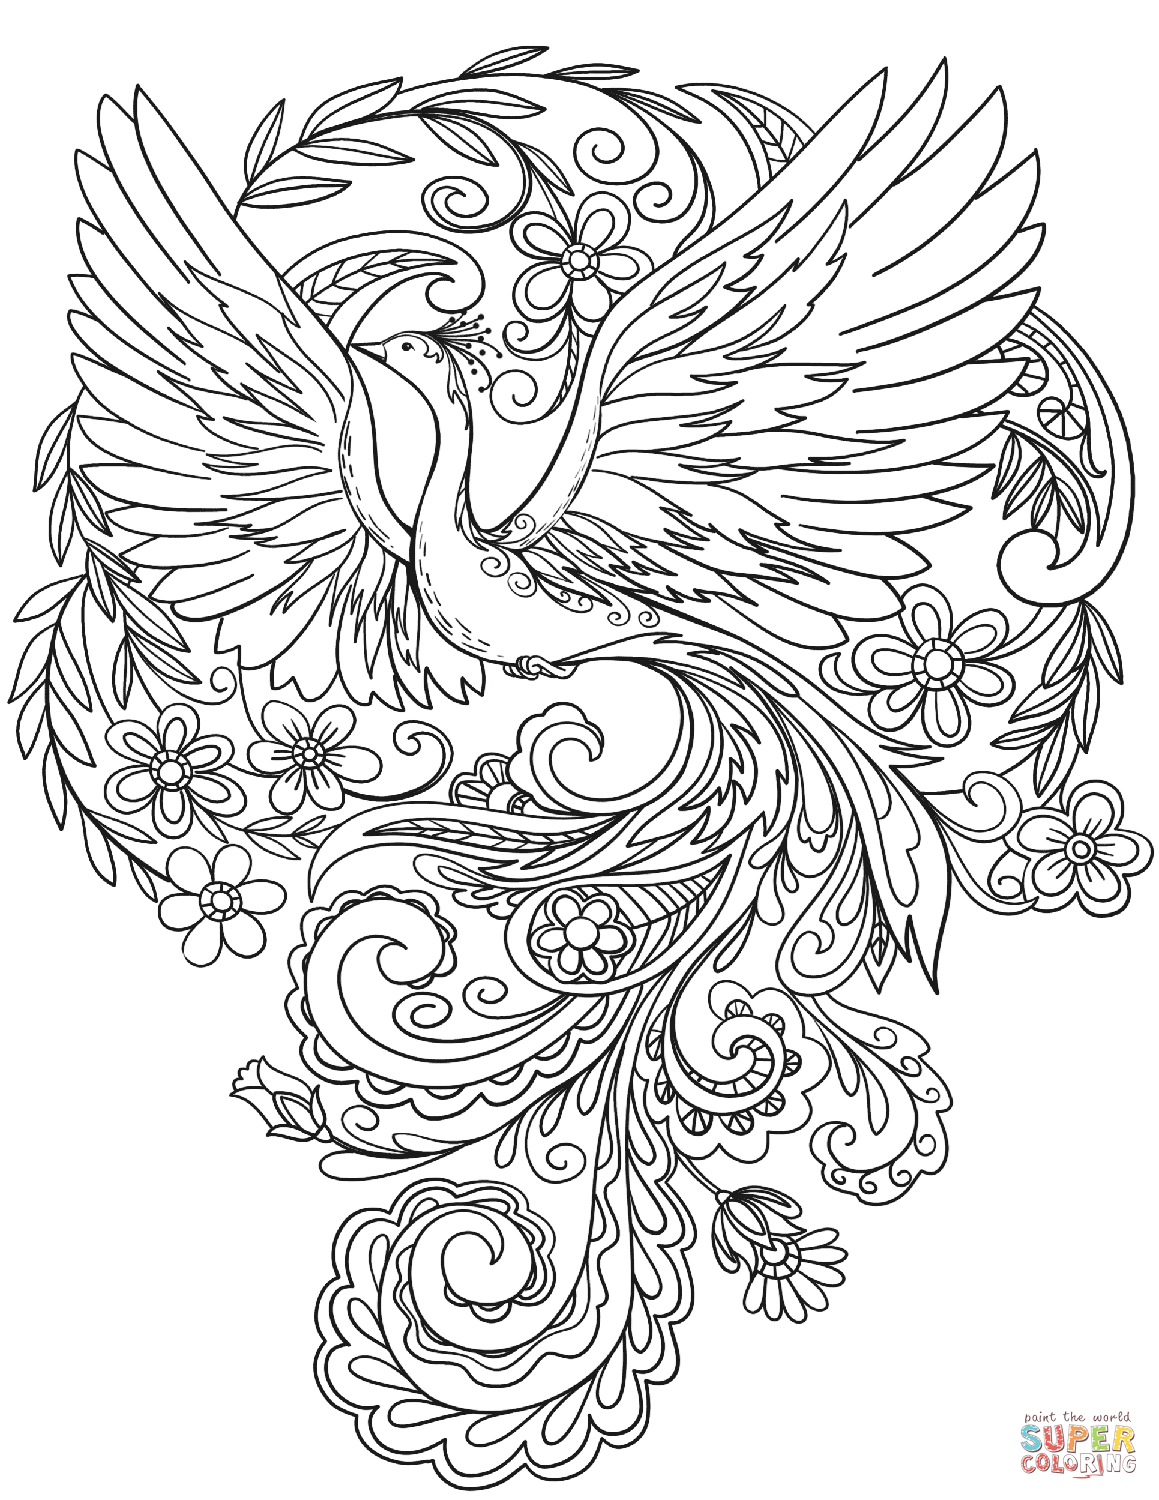 peacock coloring images peacocks to color for kids peacocks kids coloring pages coloring images peacock